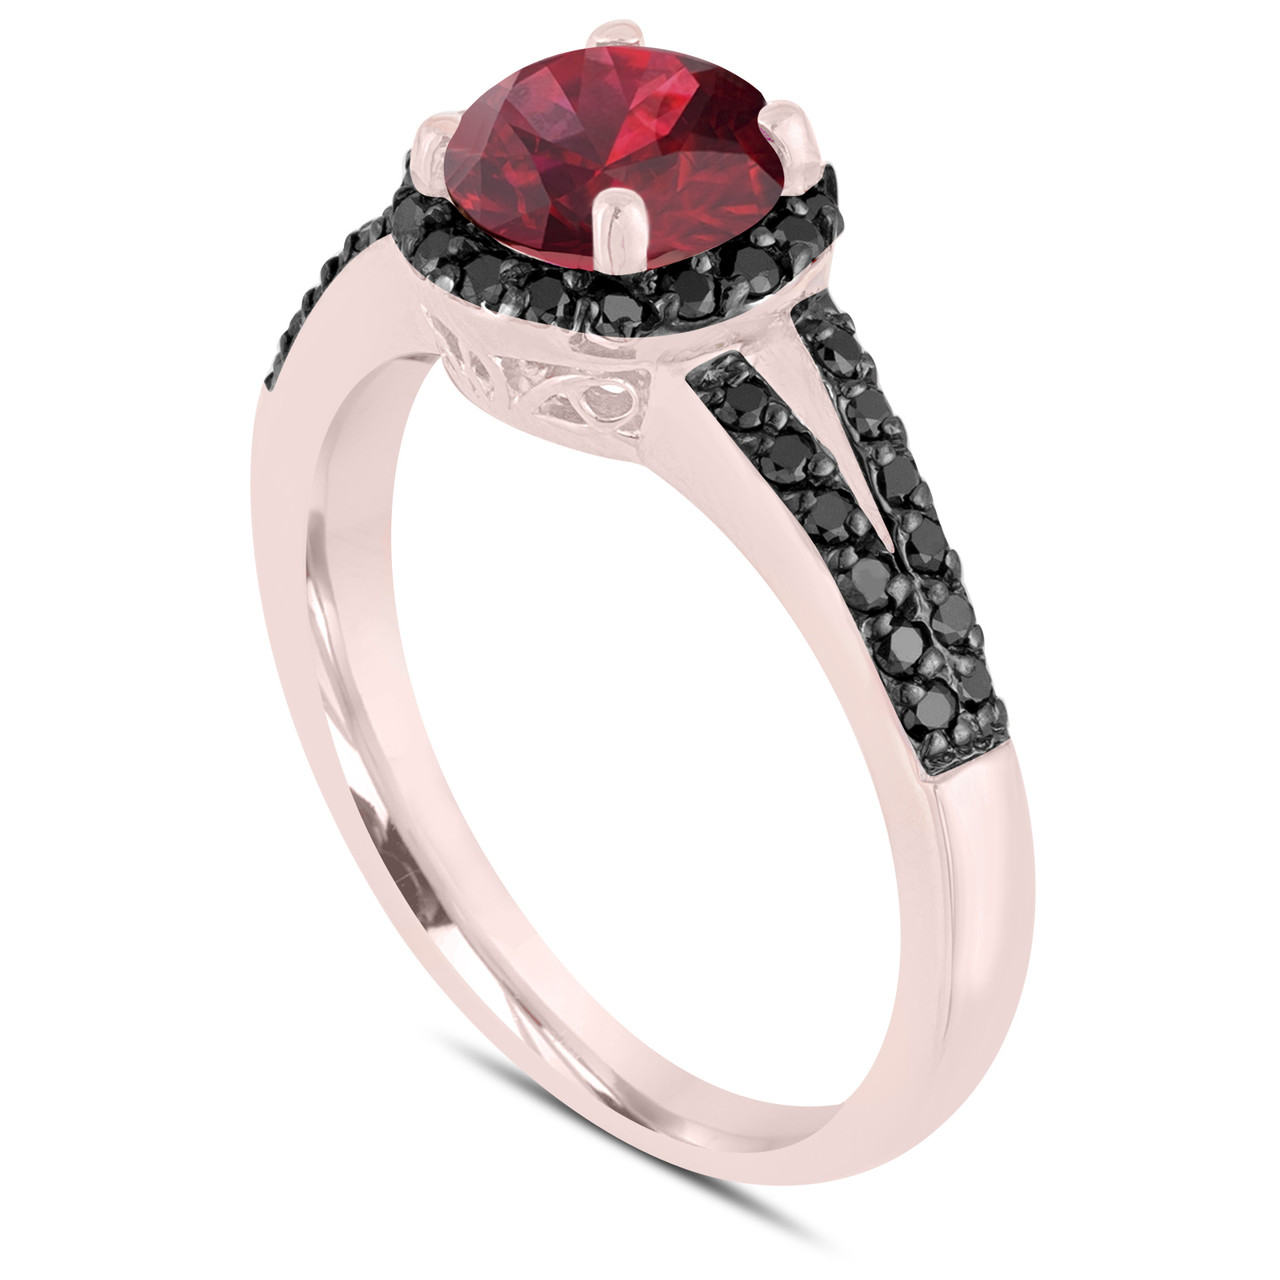 Garnet Black Diamond Engagement Ring 14k Rose Gold 1 24 Carat Unique Halo Handmade Birth Stone